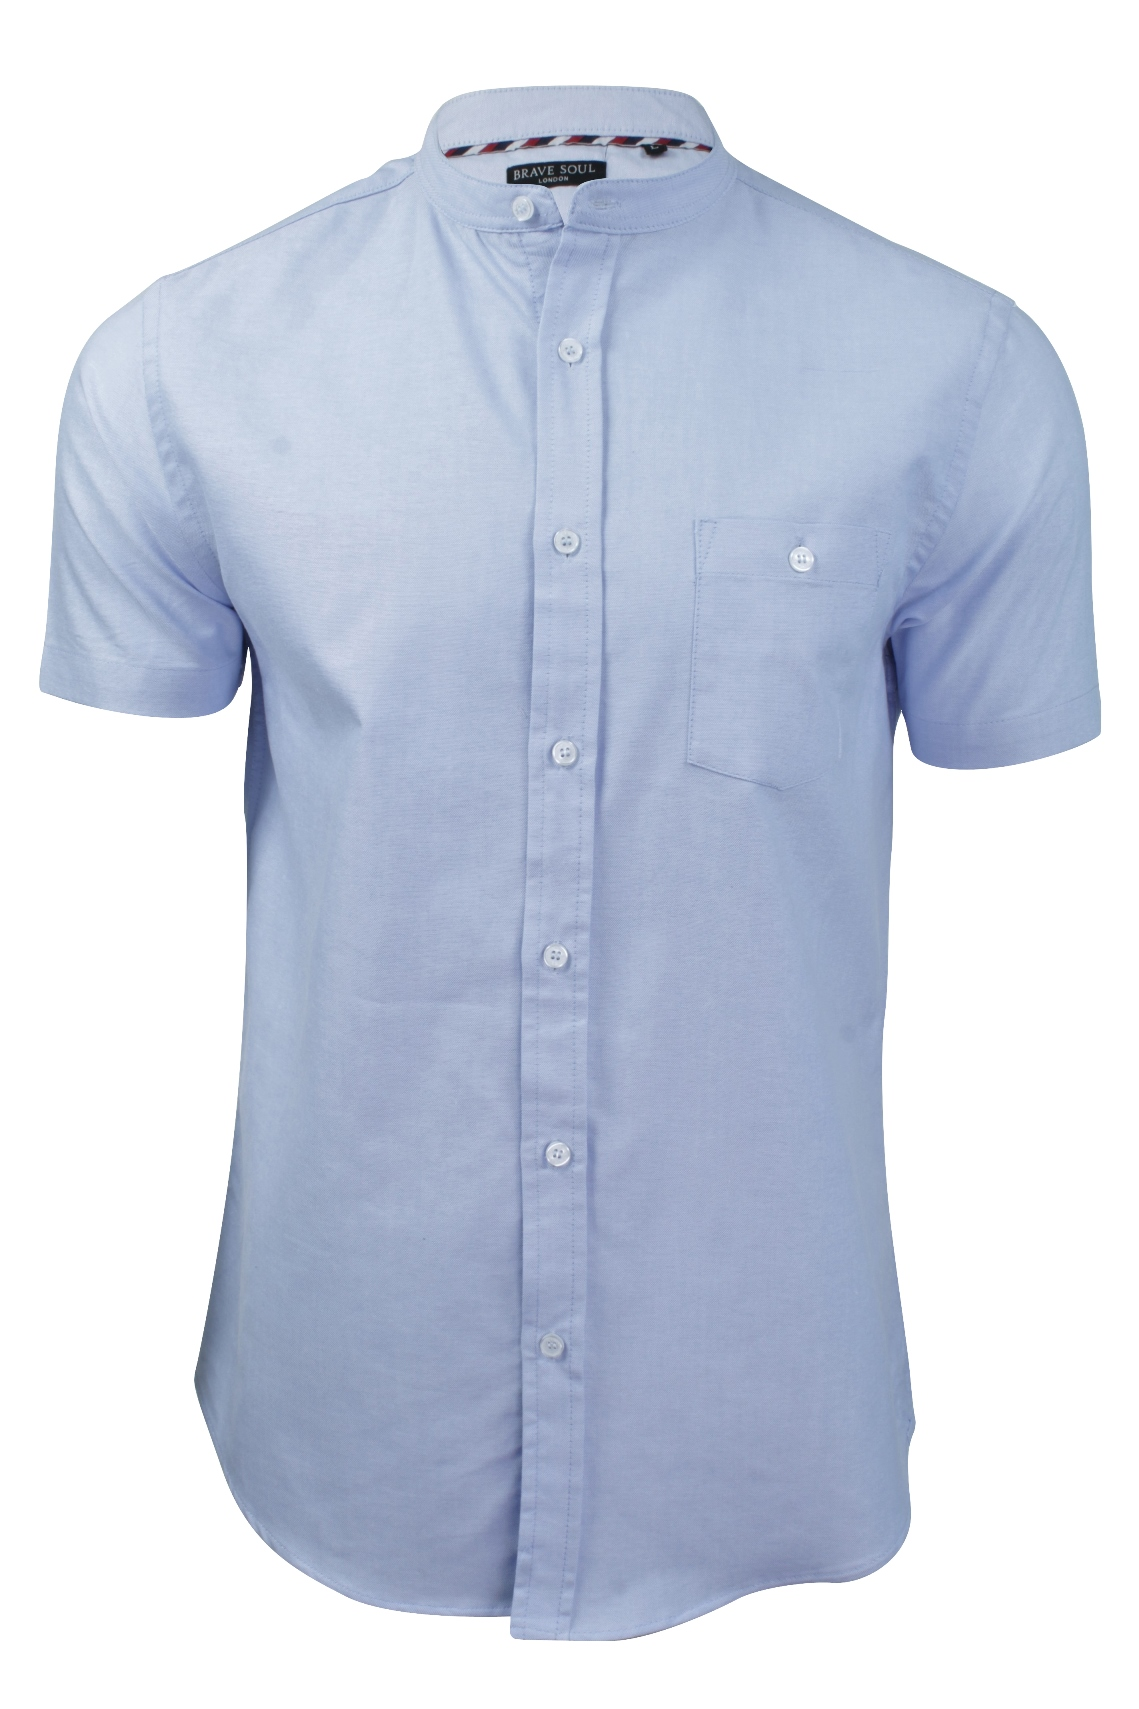 Mens grandad collar shirt by brave soul 39 tribune 39 short for Short sleeve grandad shirt